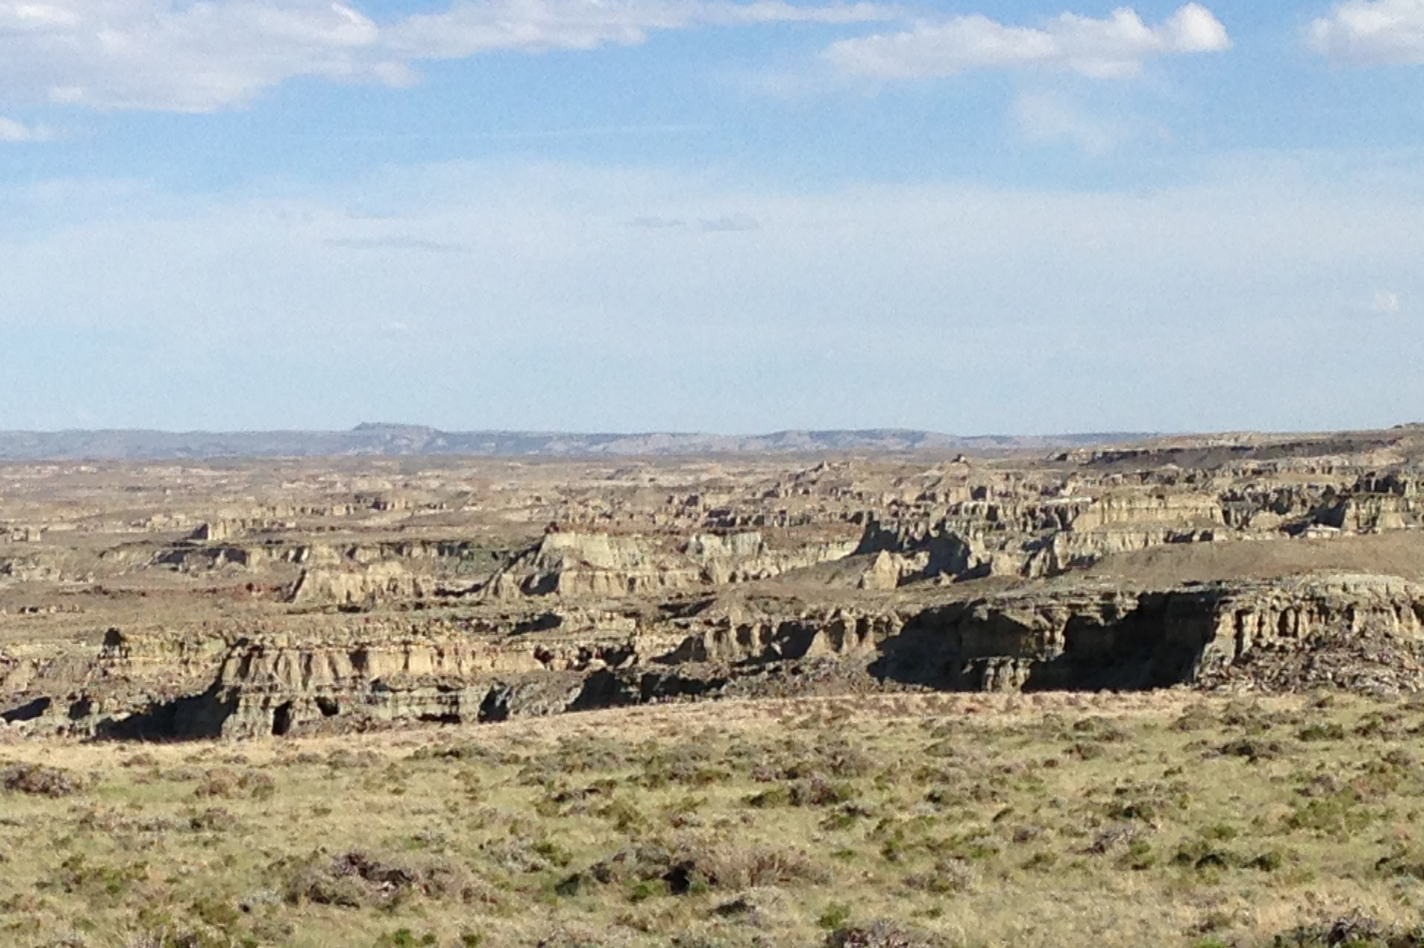 Badlands of the Washakie Basin of Wyoming one of the great places I spend my summers looking for fossils.